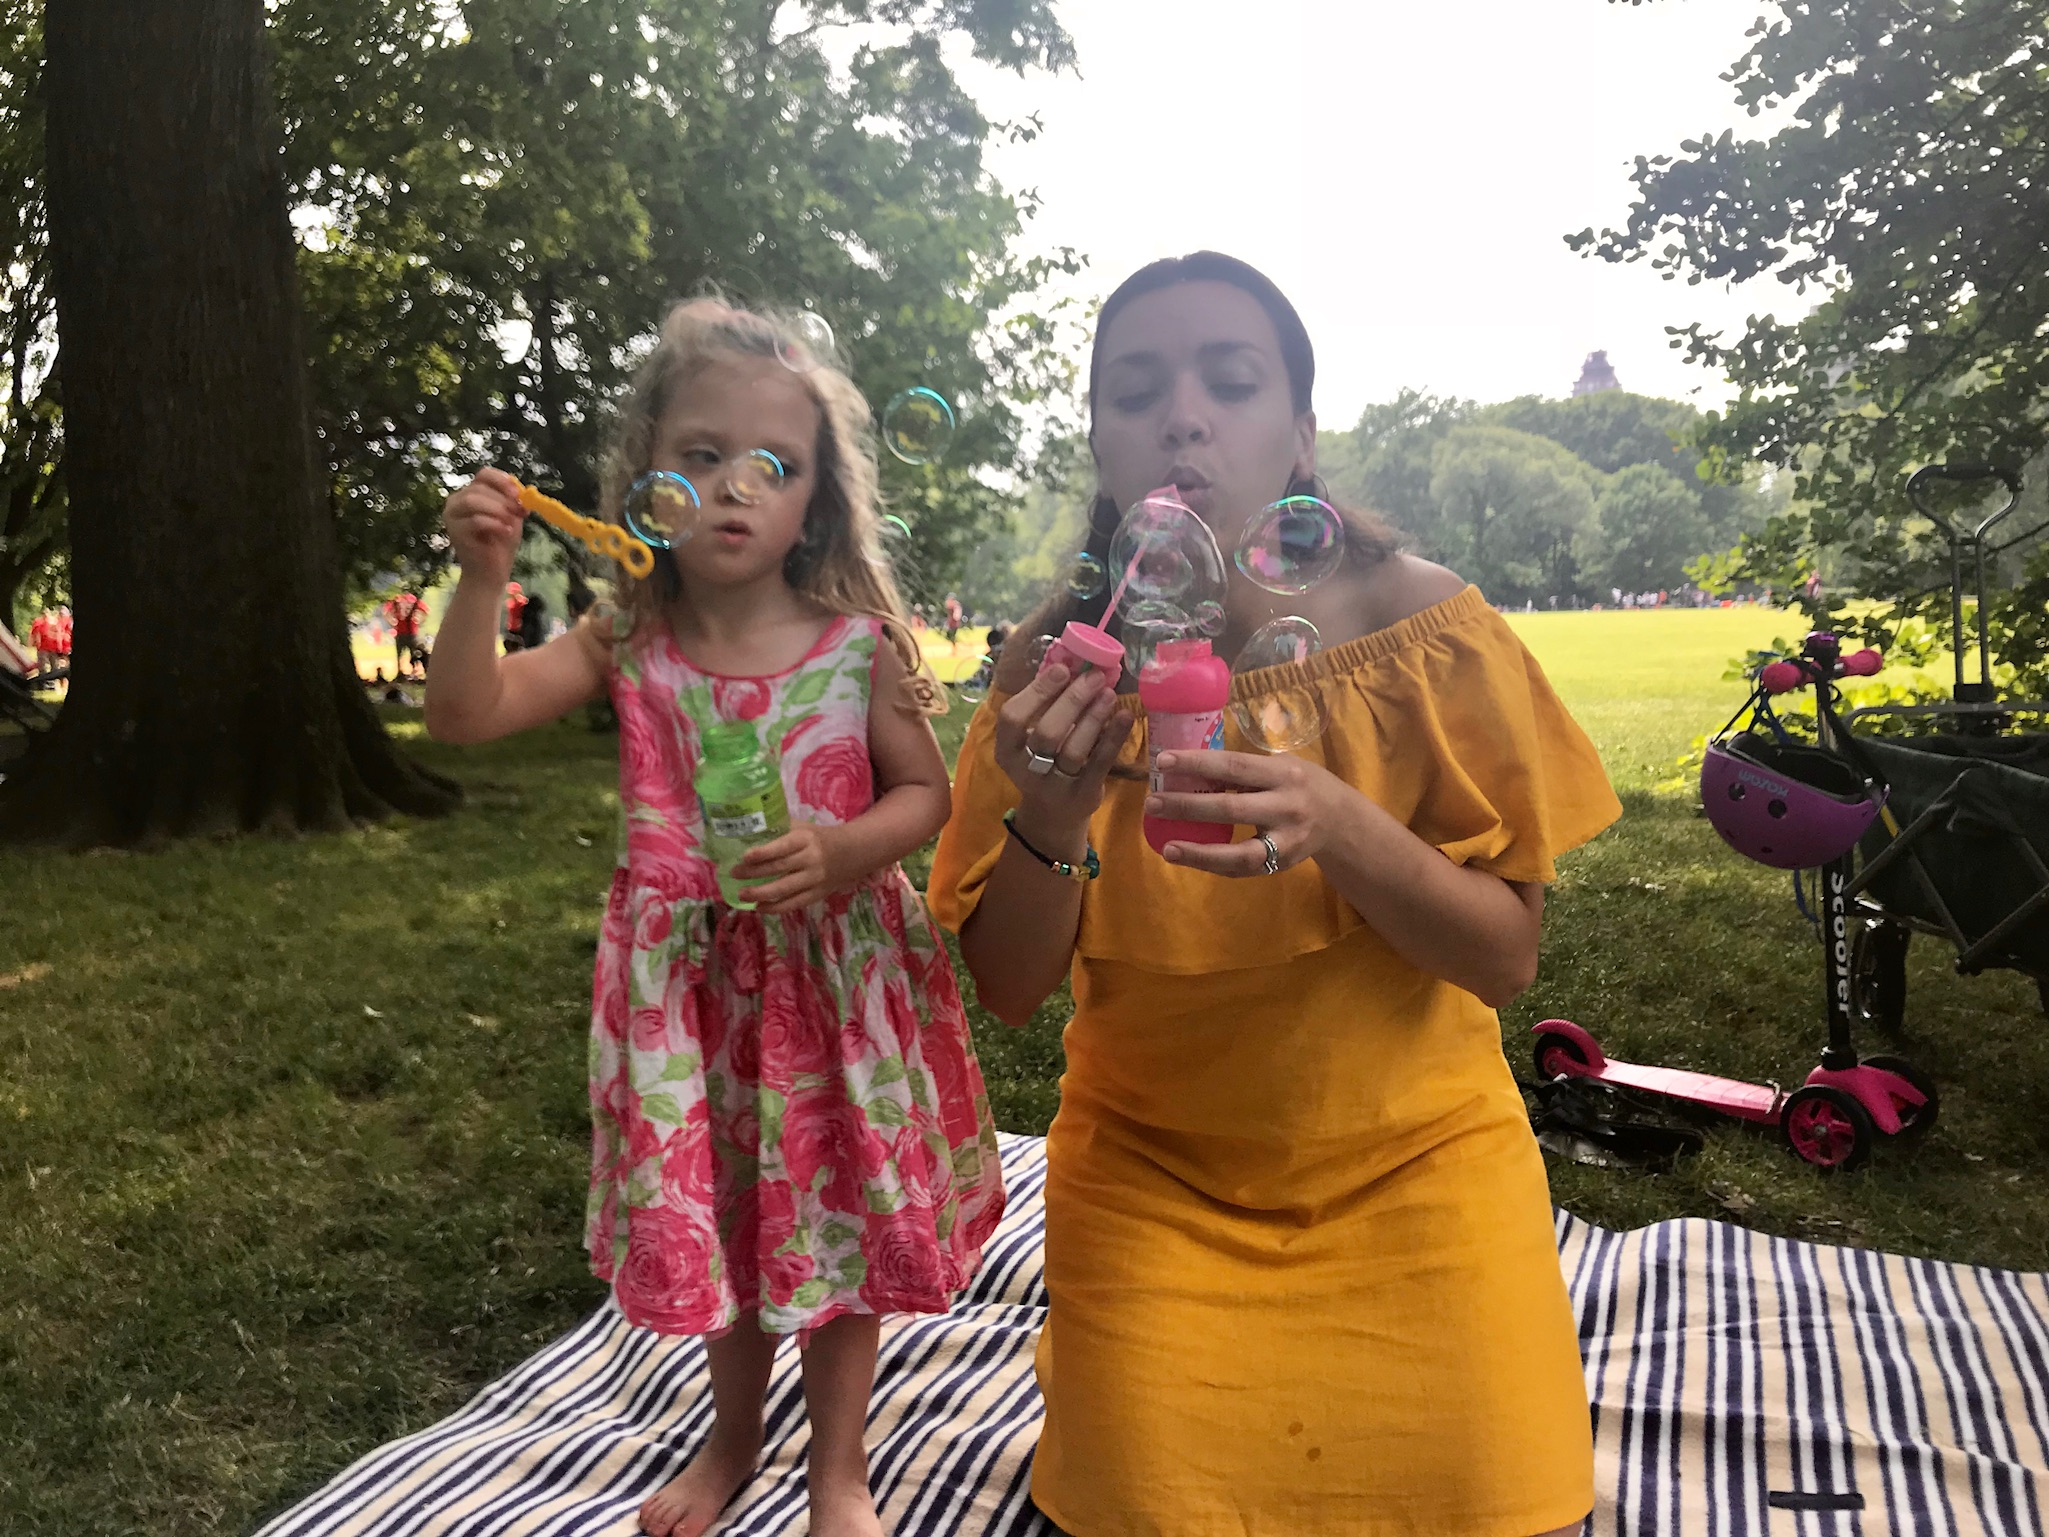 After all of these fun events and plans, we basked in the glory of a Sunday afternoon filled with nothing but bubbles in Central Park.